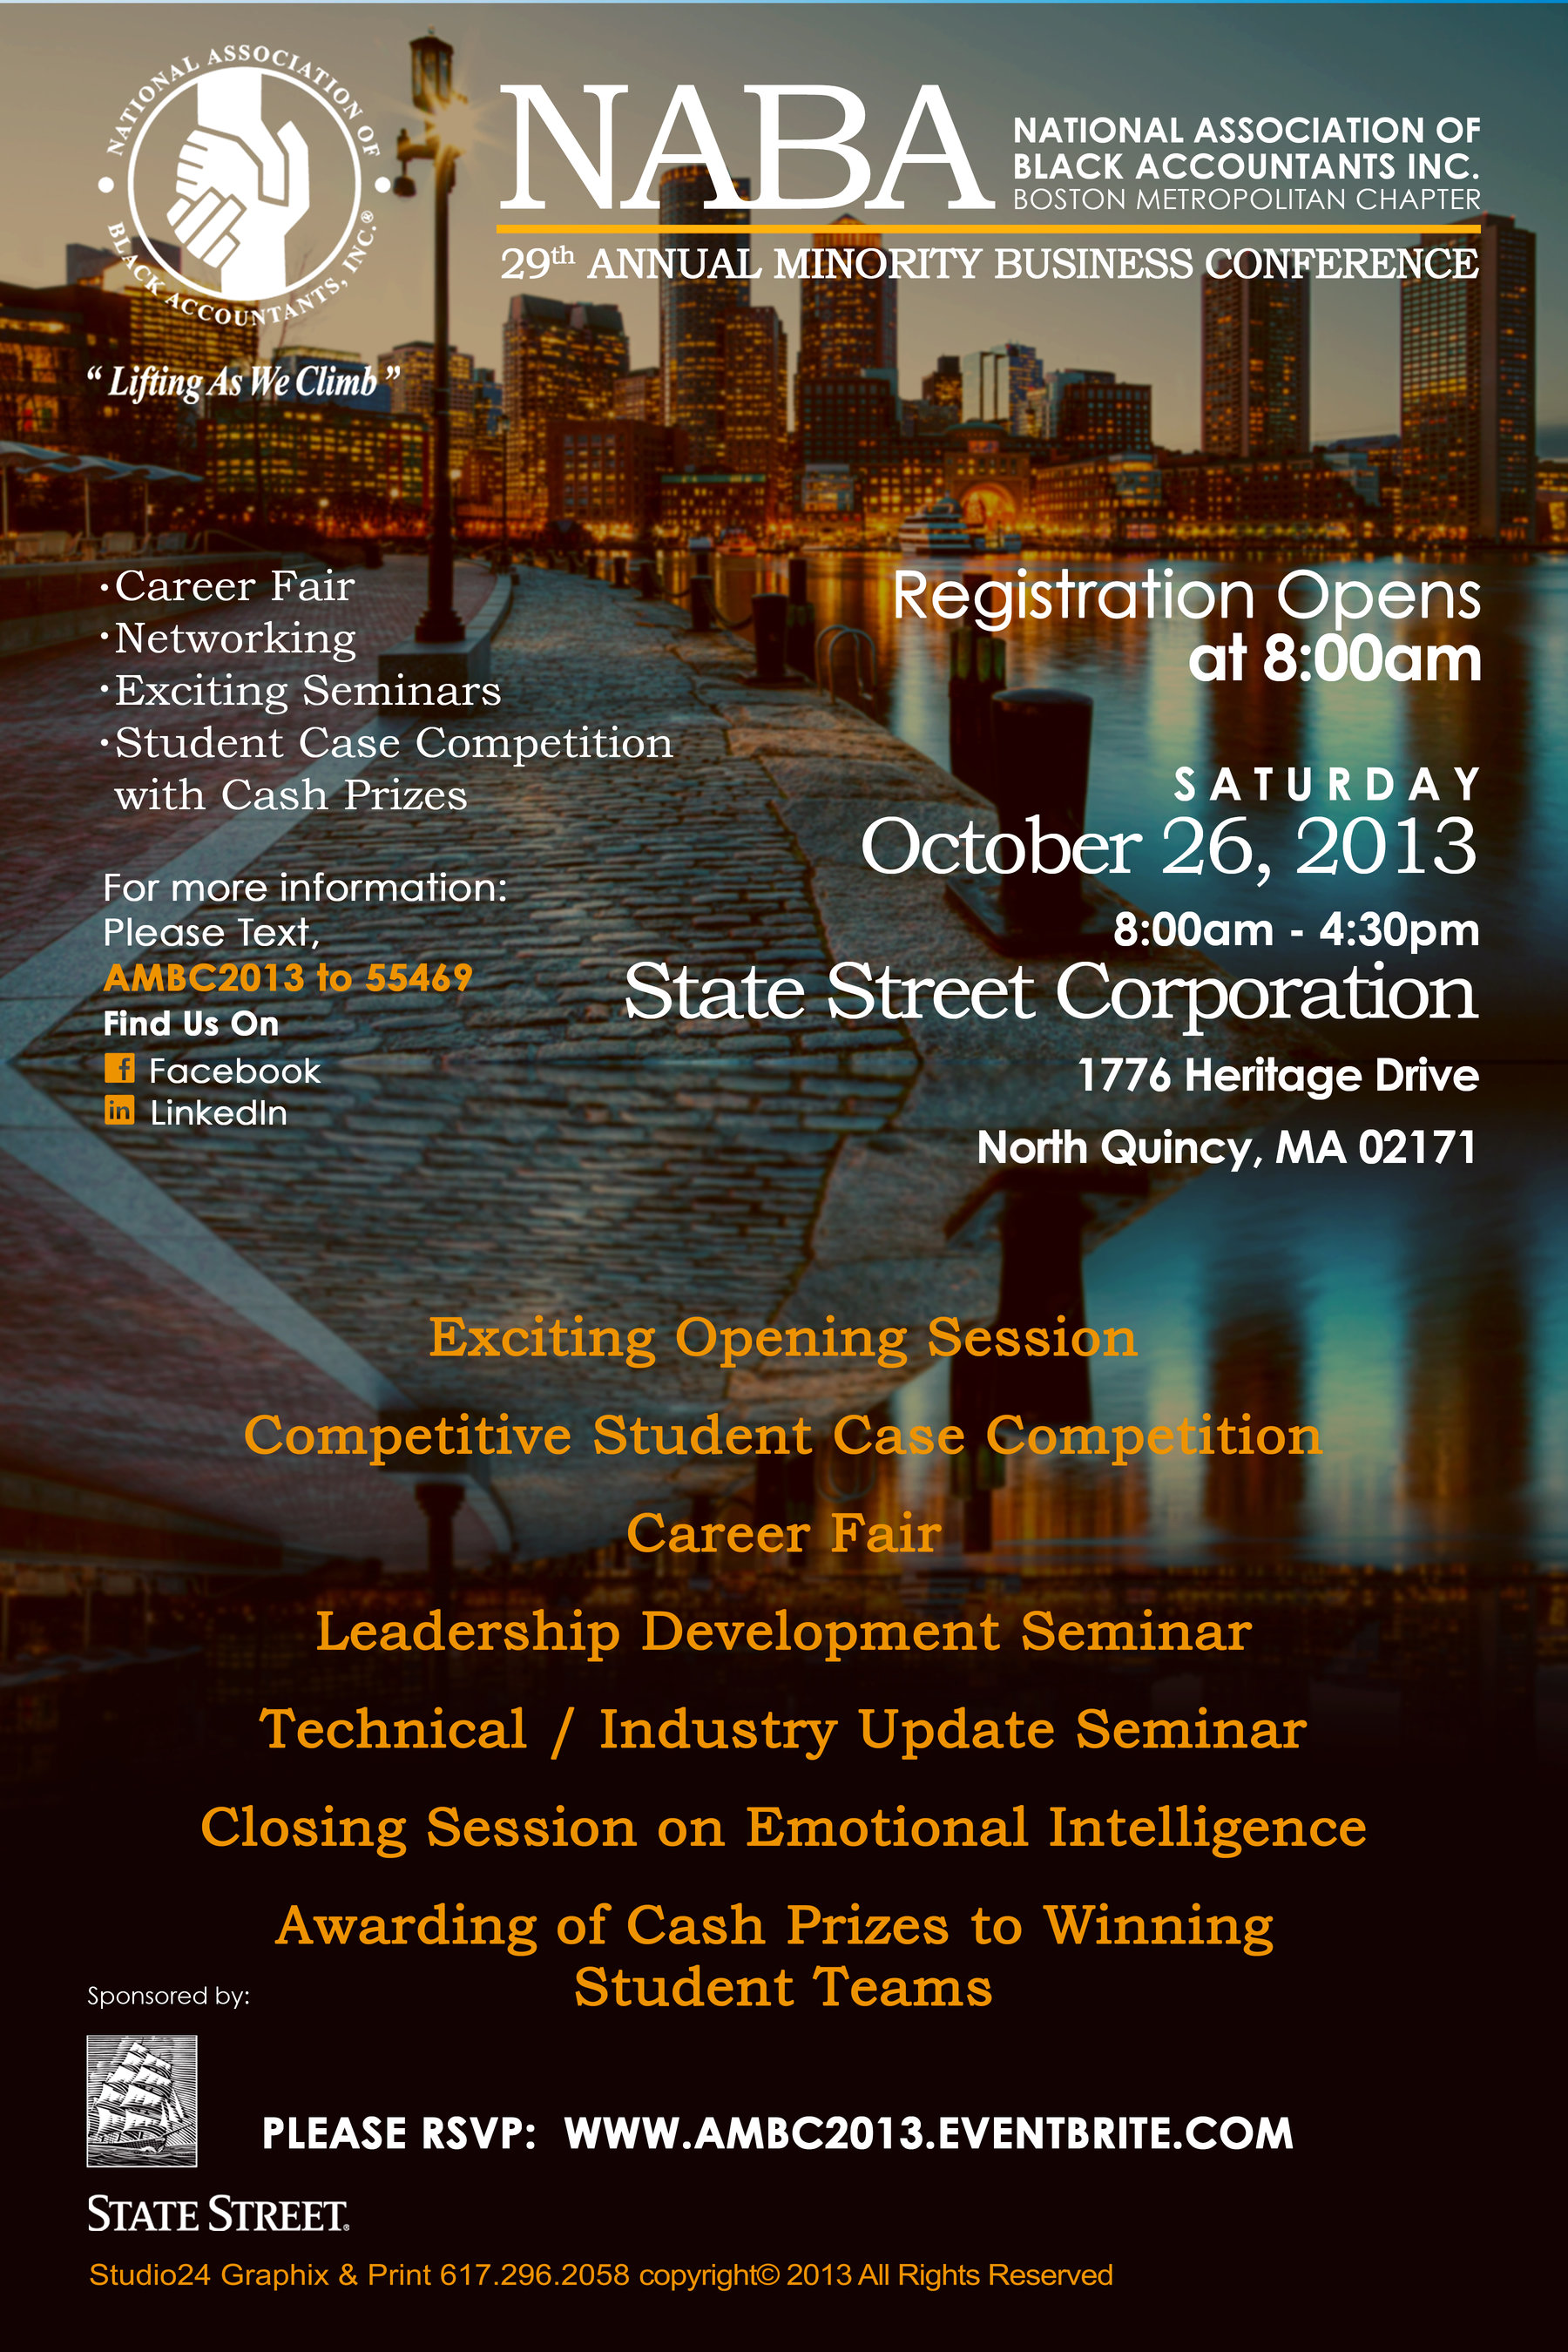 Naba Boston S 29th Annual Minority Business Conference